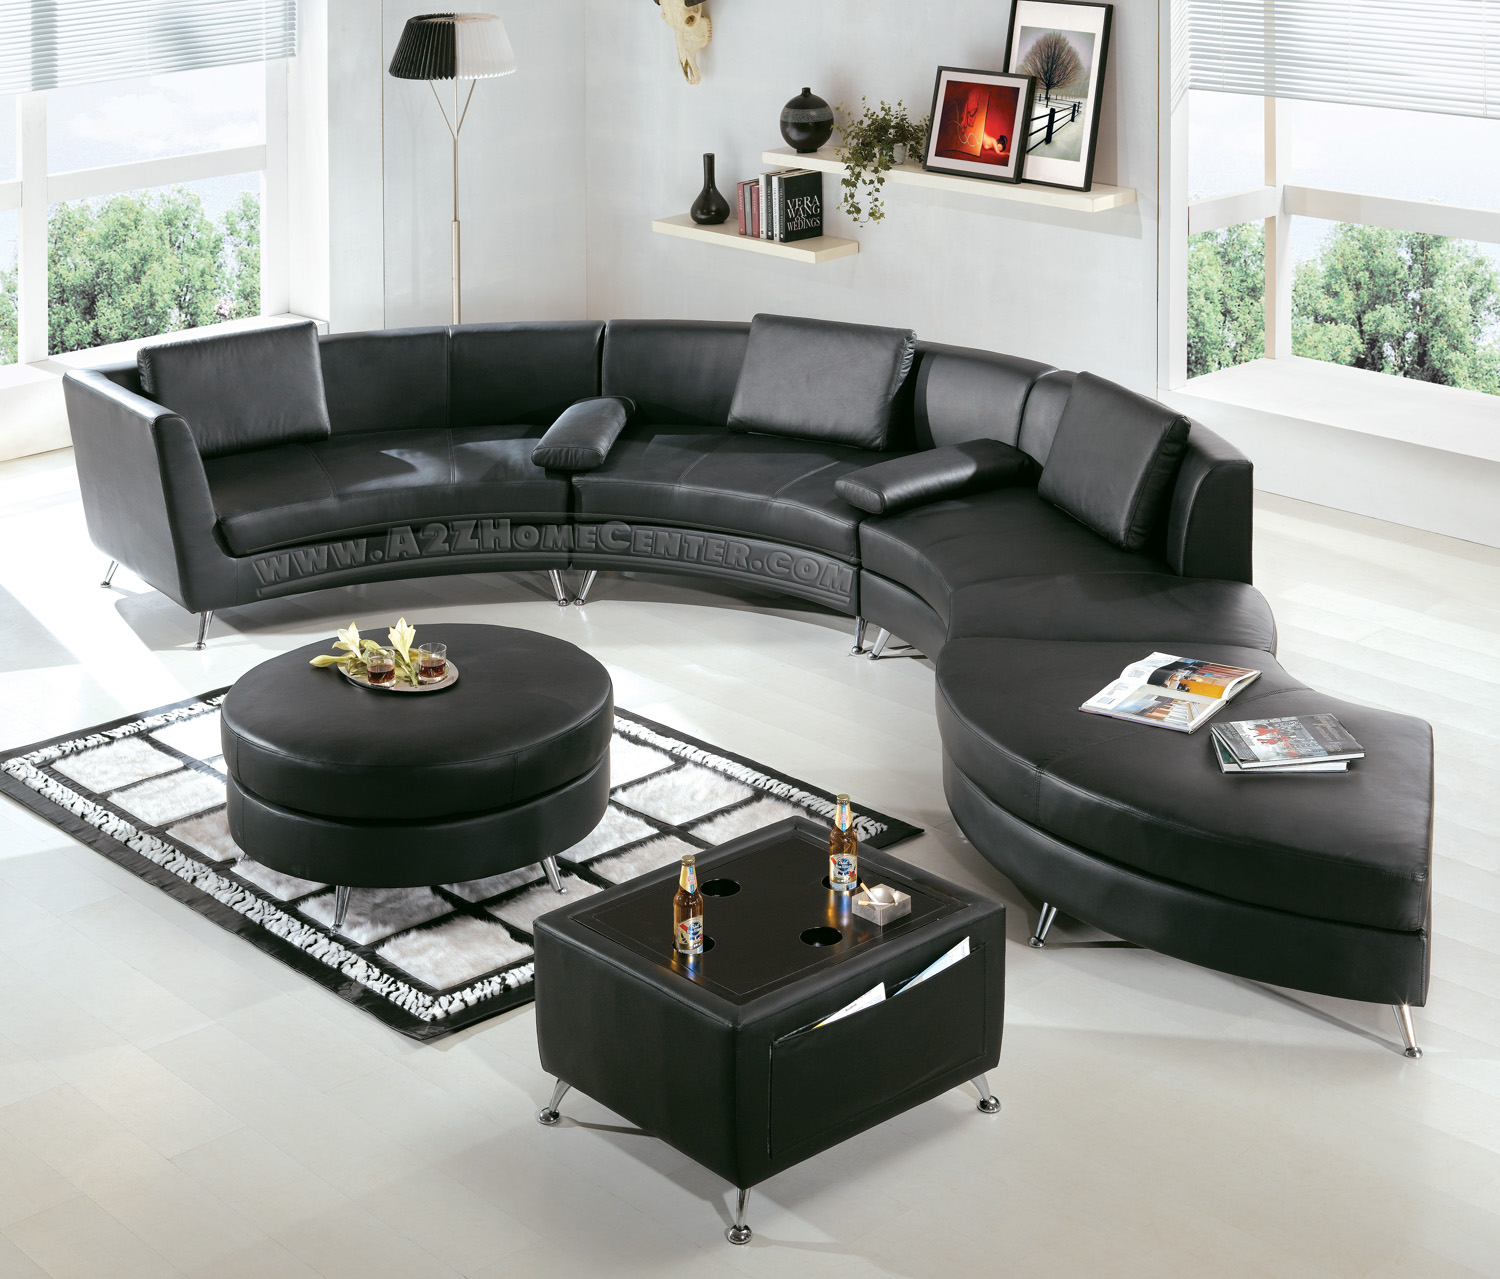 Modern Furniture For Home modern contemporary furniture design - home design